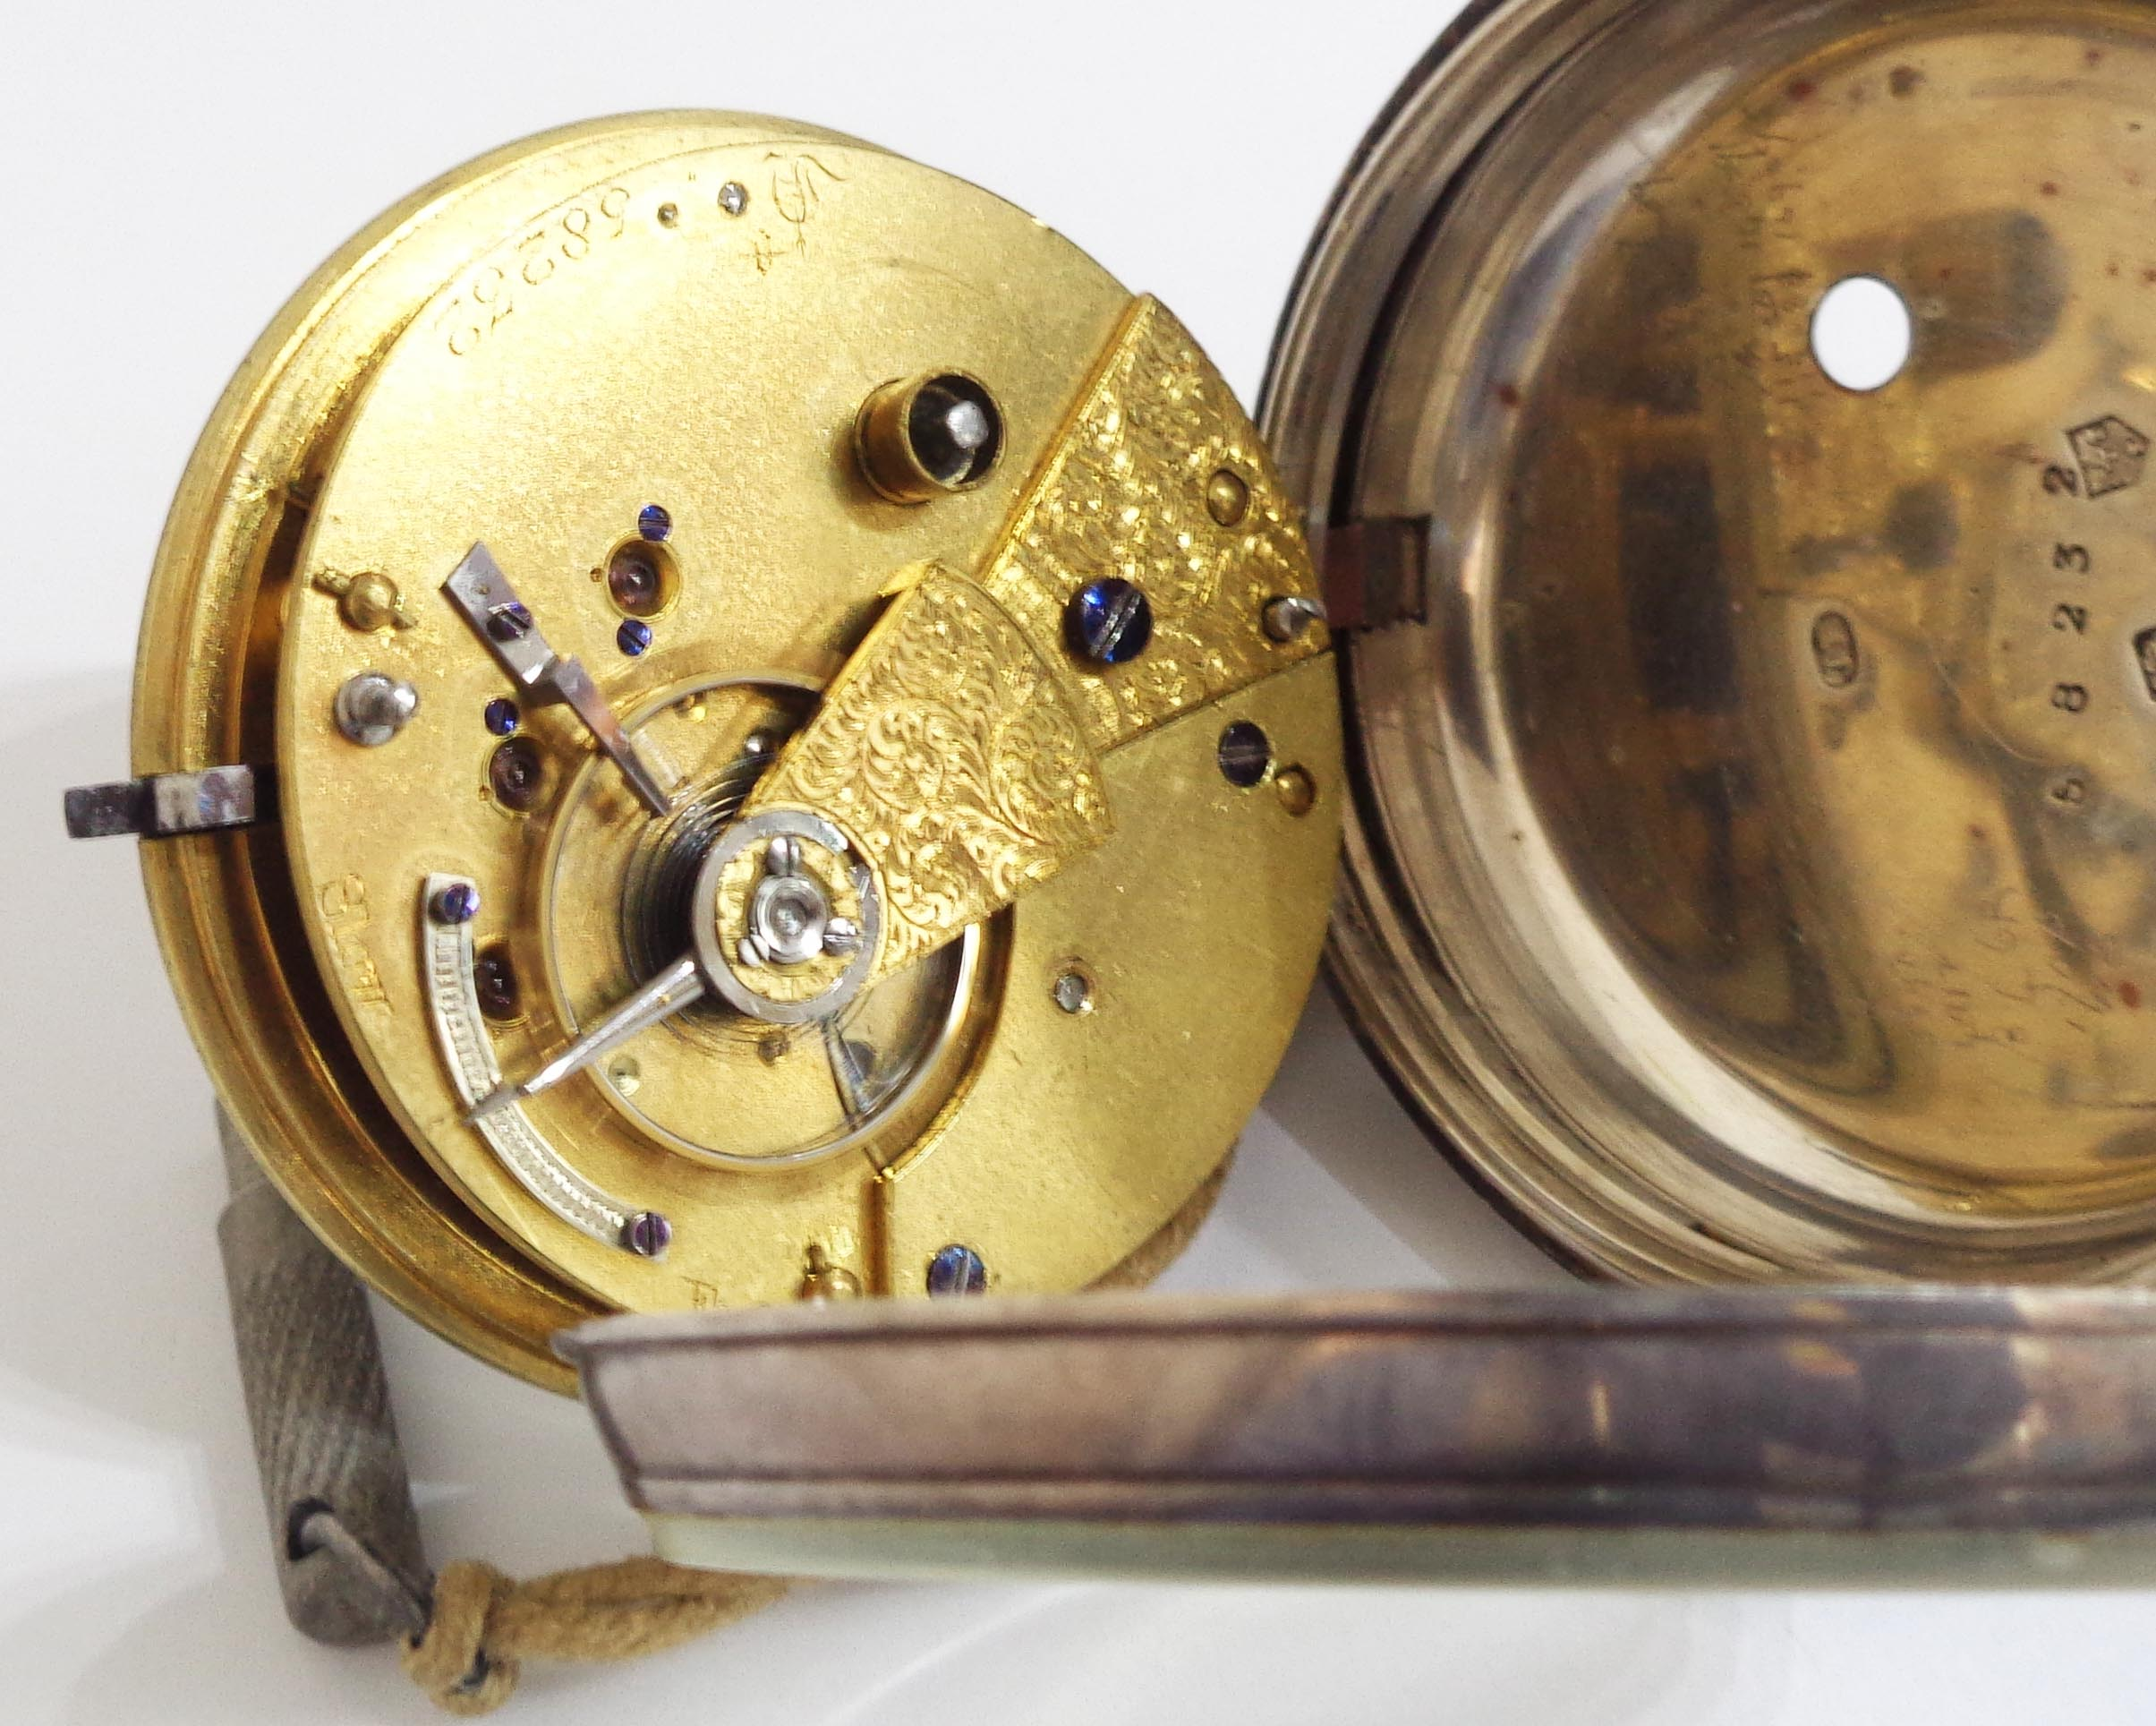 A silver cased pocket watch with fusee movement - Chester 1870's - Image 3 of 5